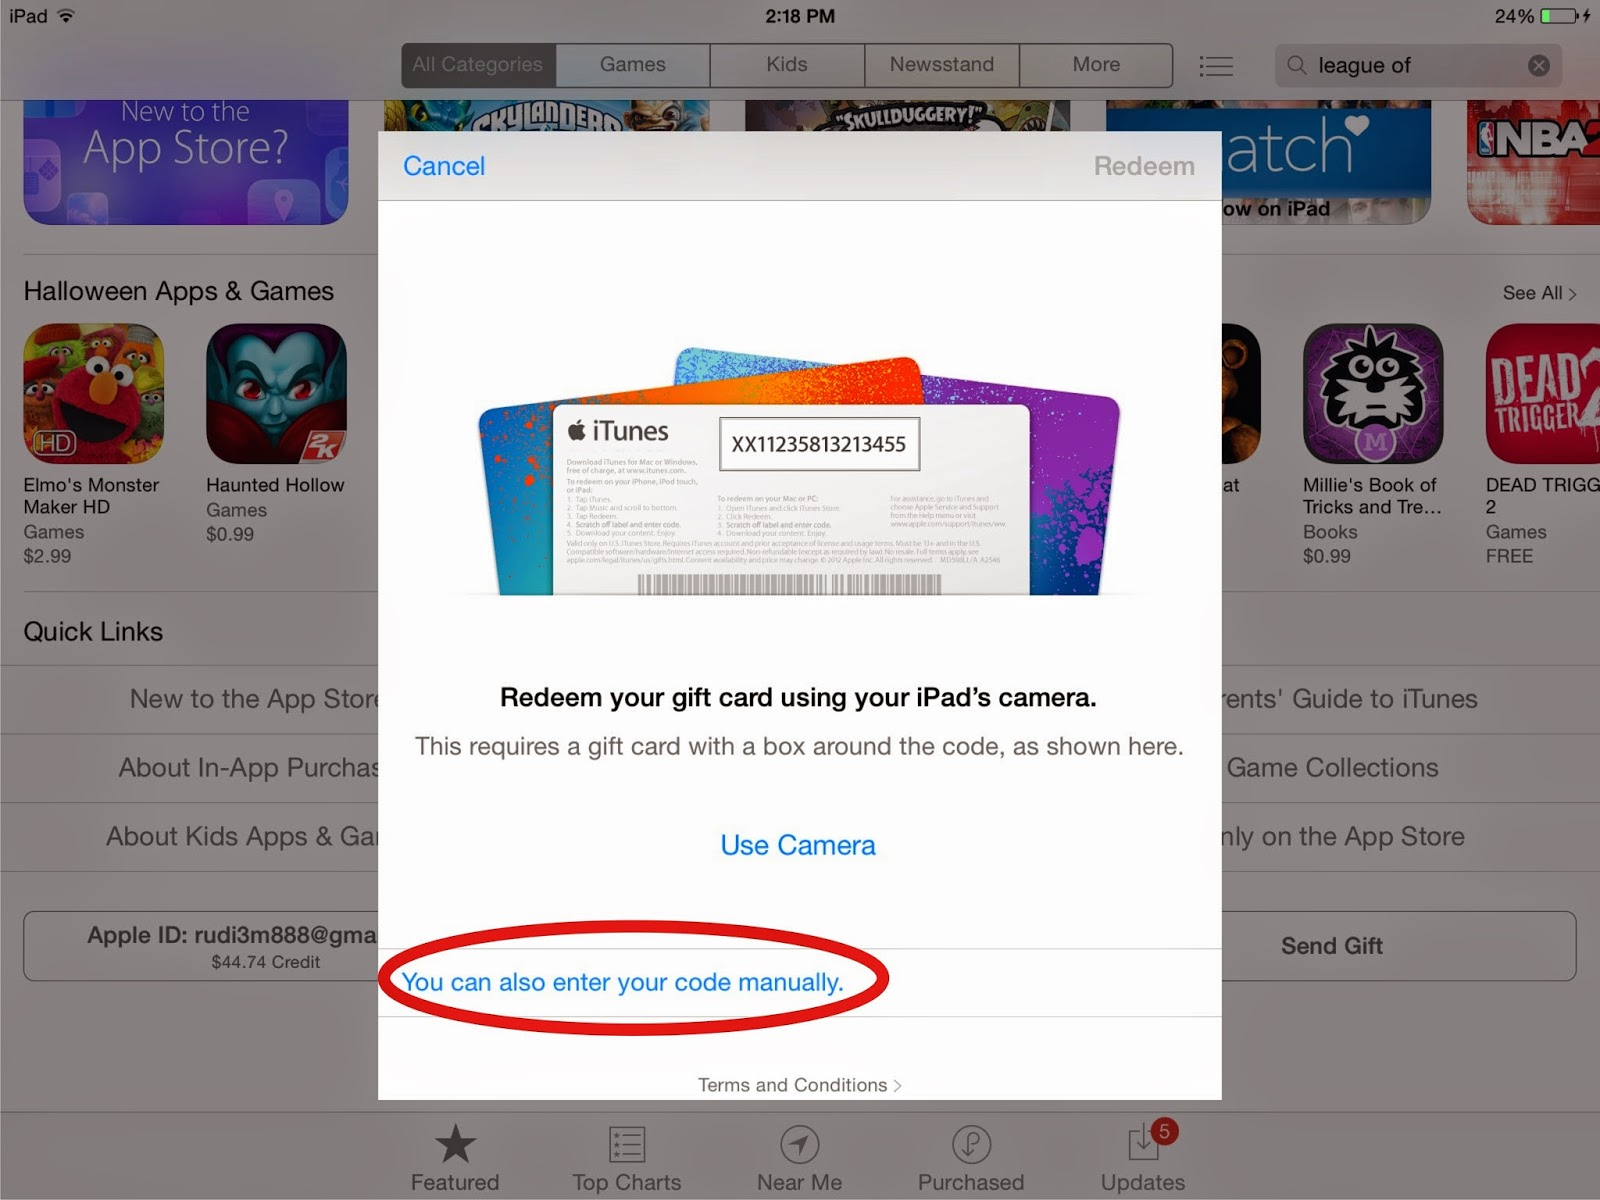 Free 1200 Gems Clash Of Clans For Real Redeem Ipad Iphone Itunes Gift Card Us 5 Input Your Voucher Code In The Mark Like Picture Below